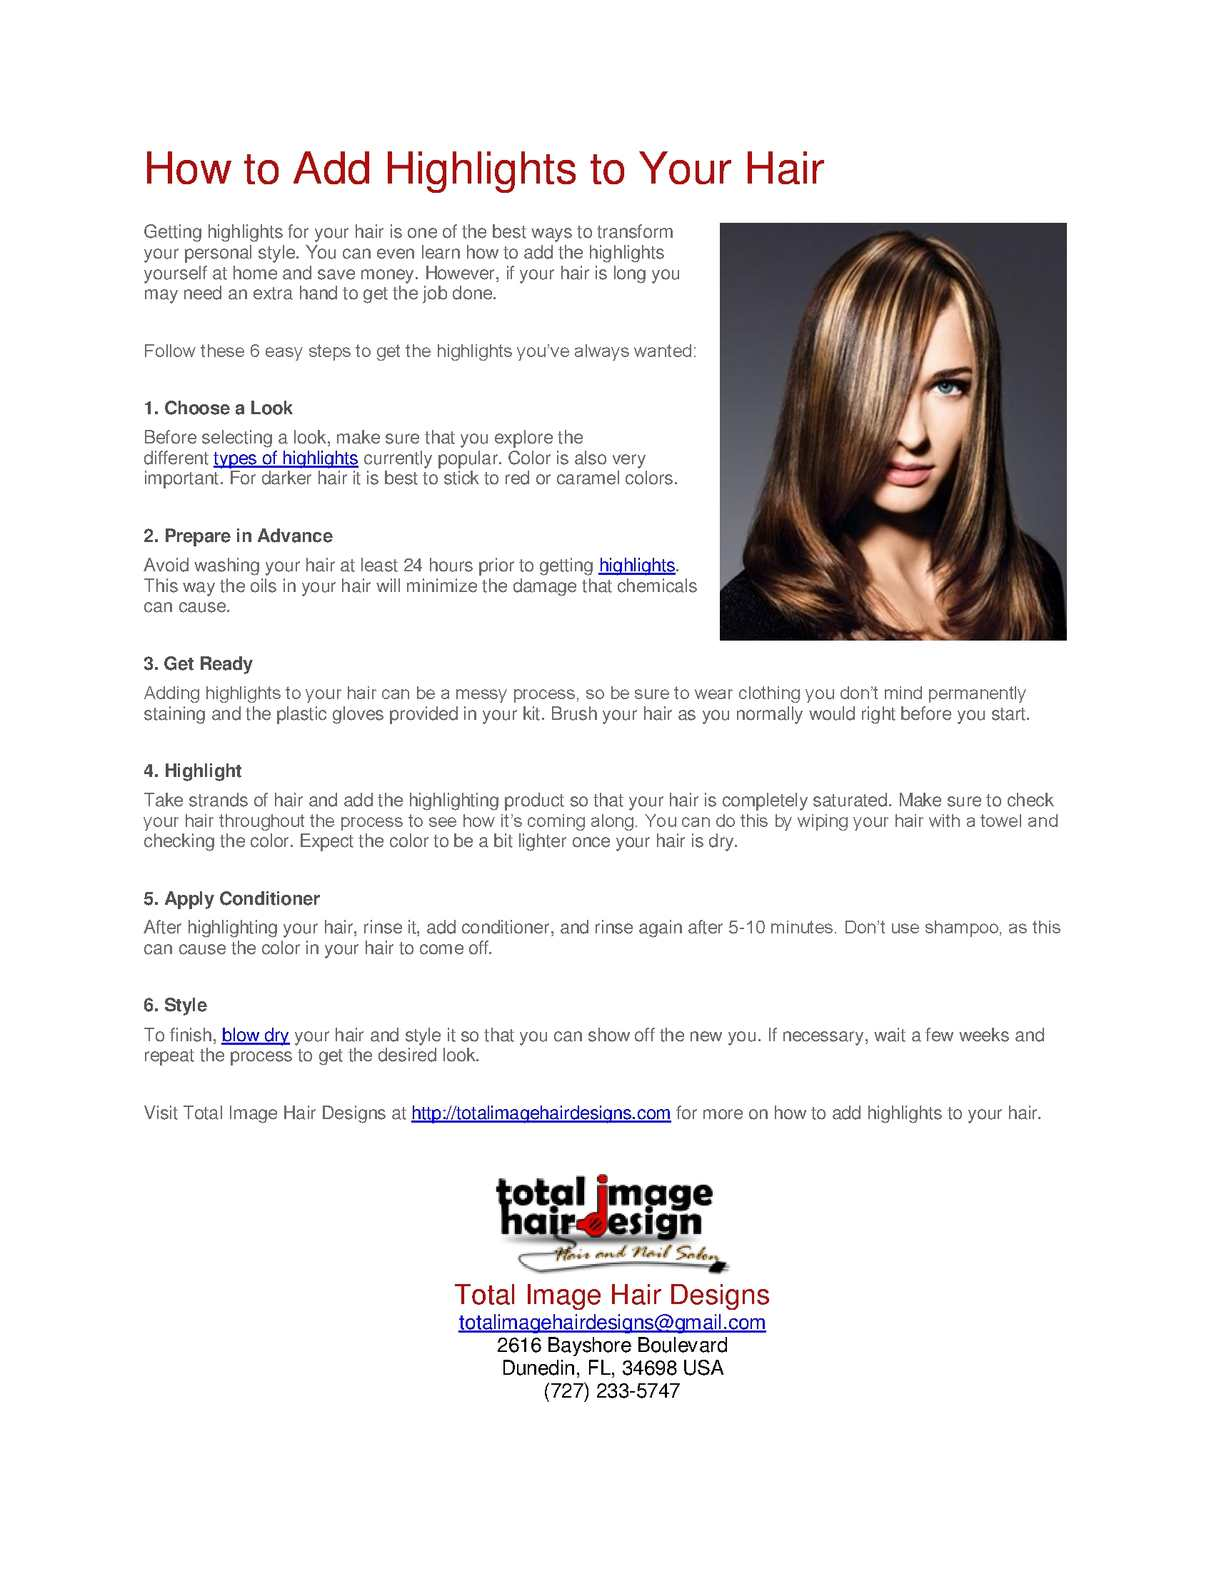 Calamo how to add highlights to your hair solutioingenieria Choice Image